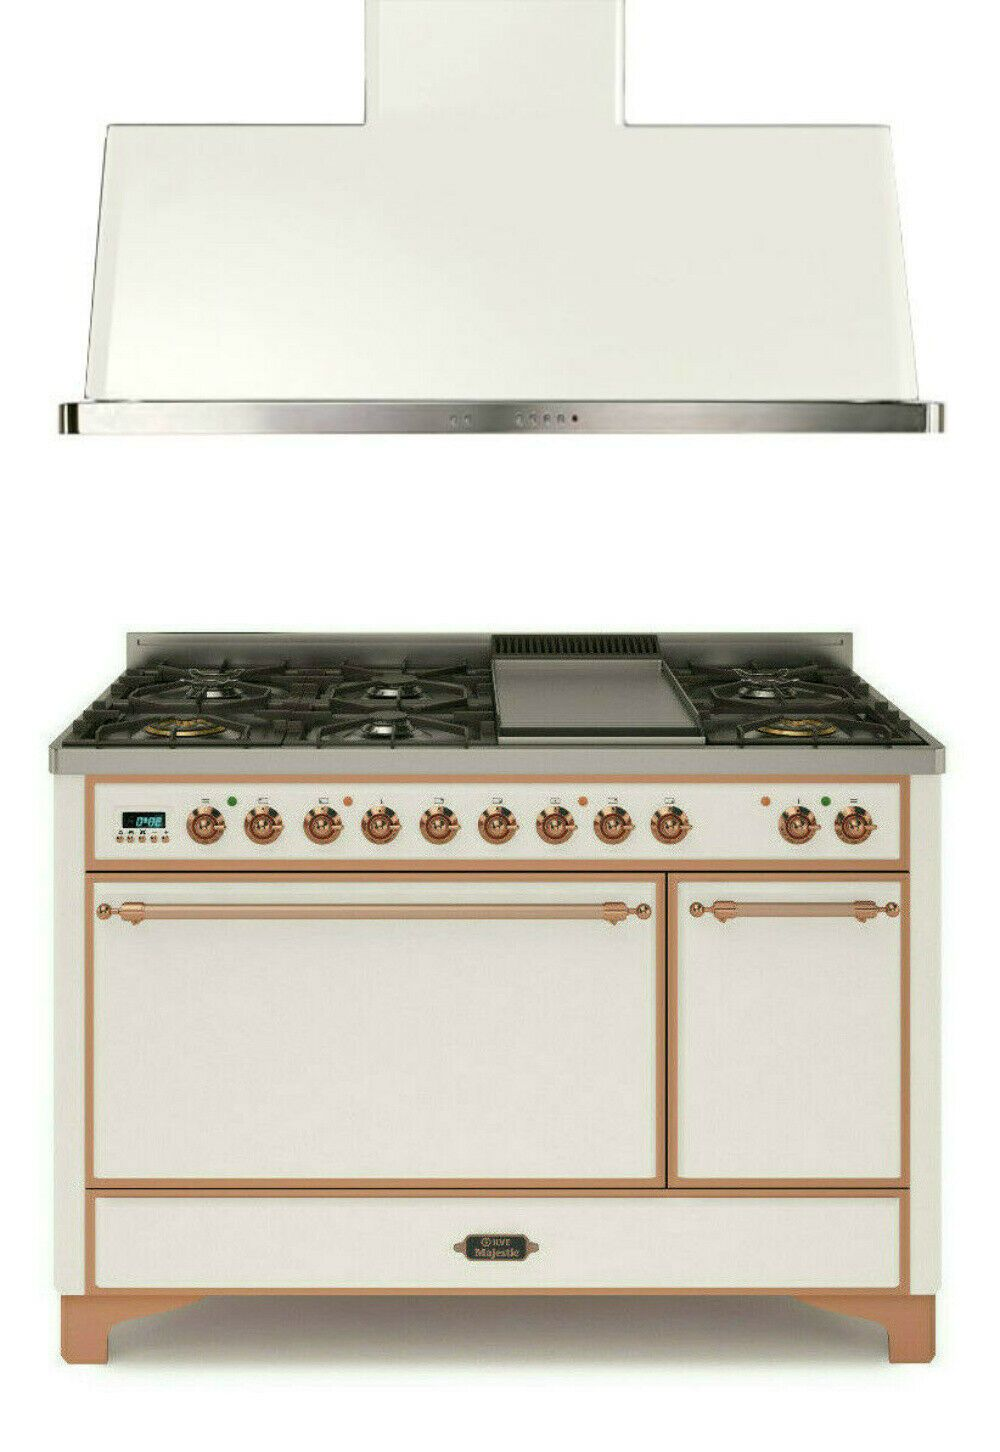 Ilve range in 2020 double oven oven cooktop oven